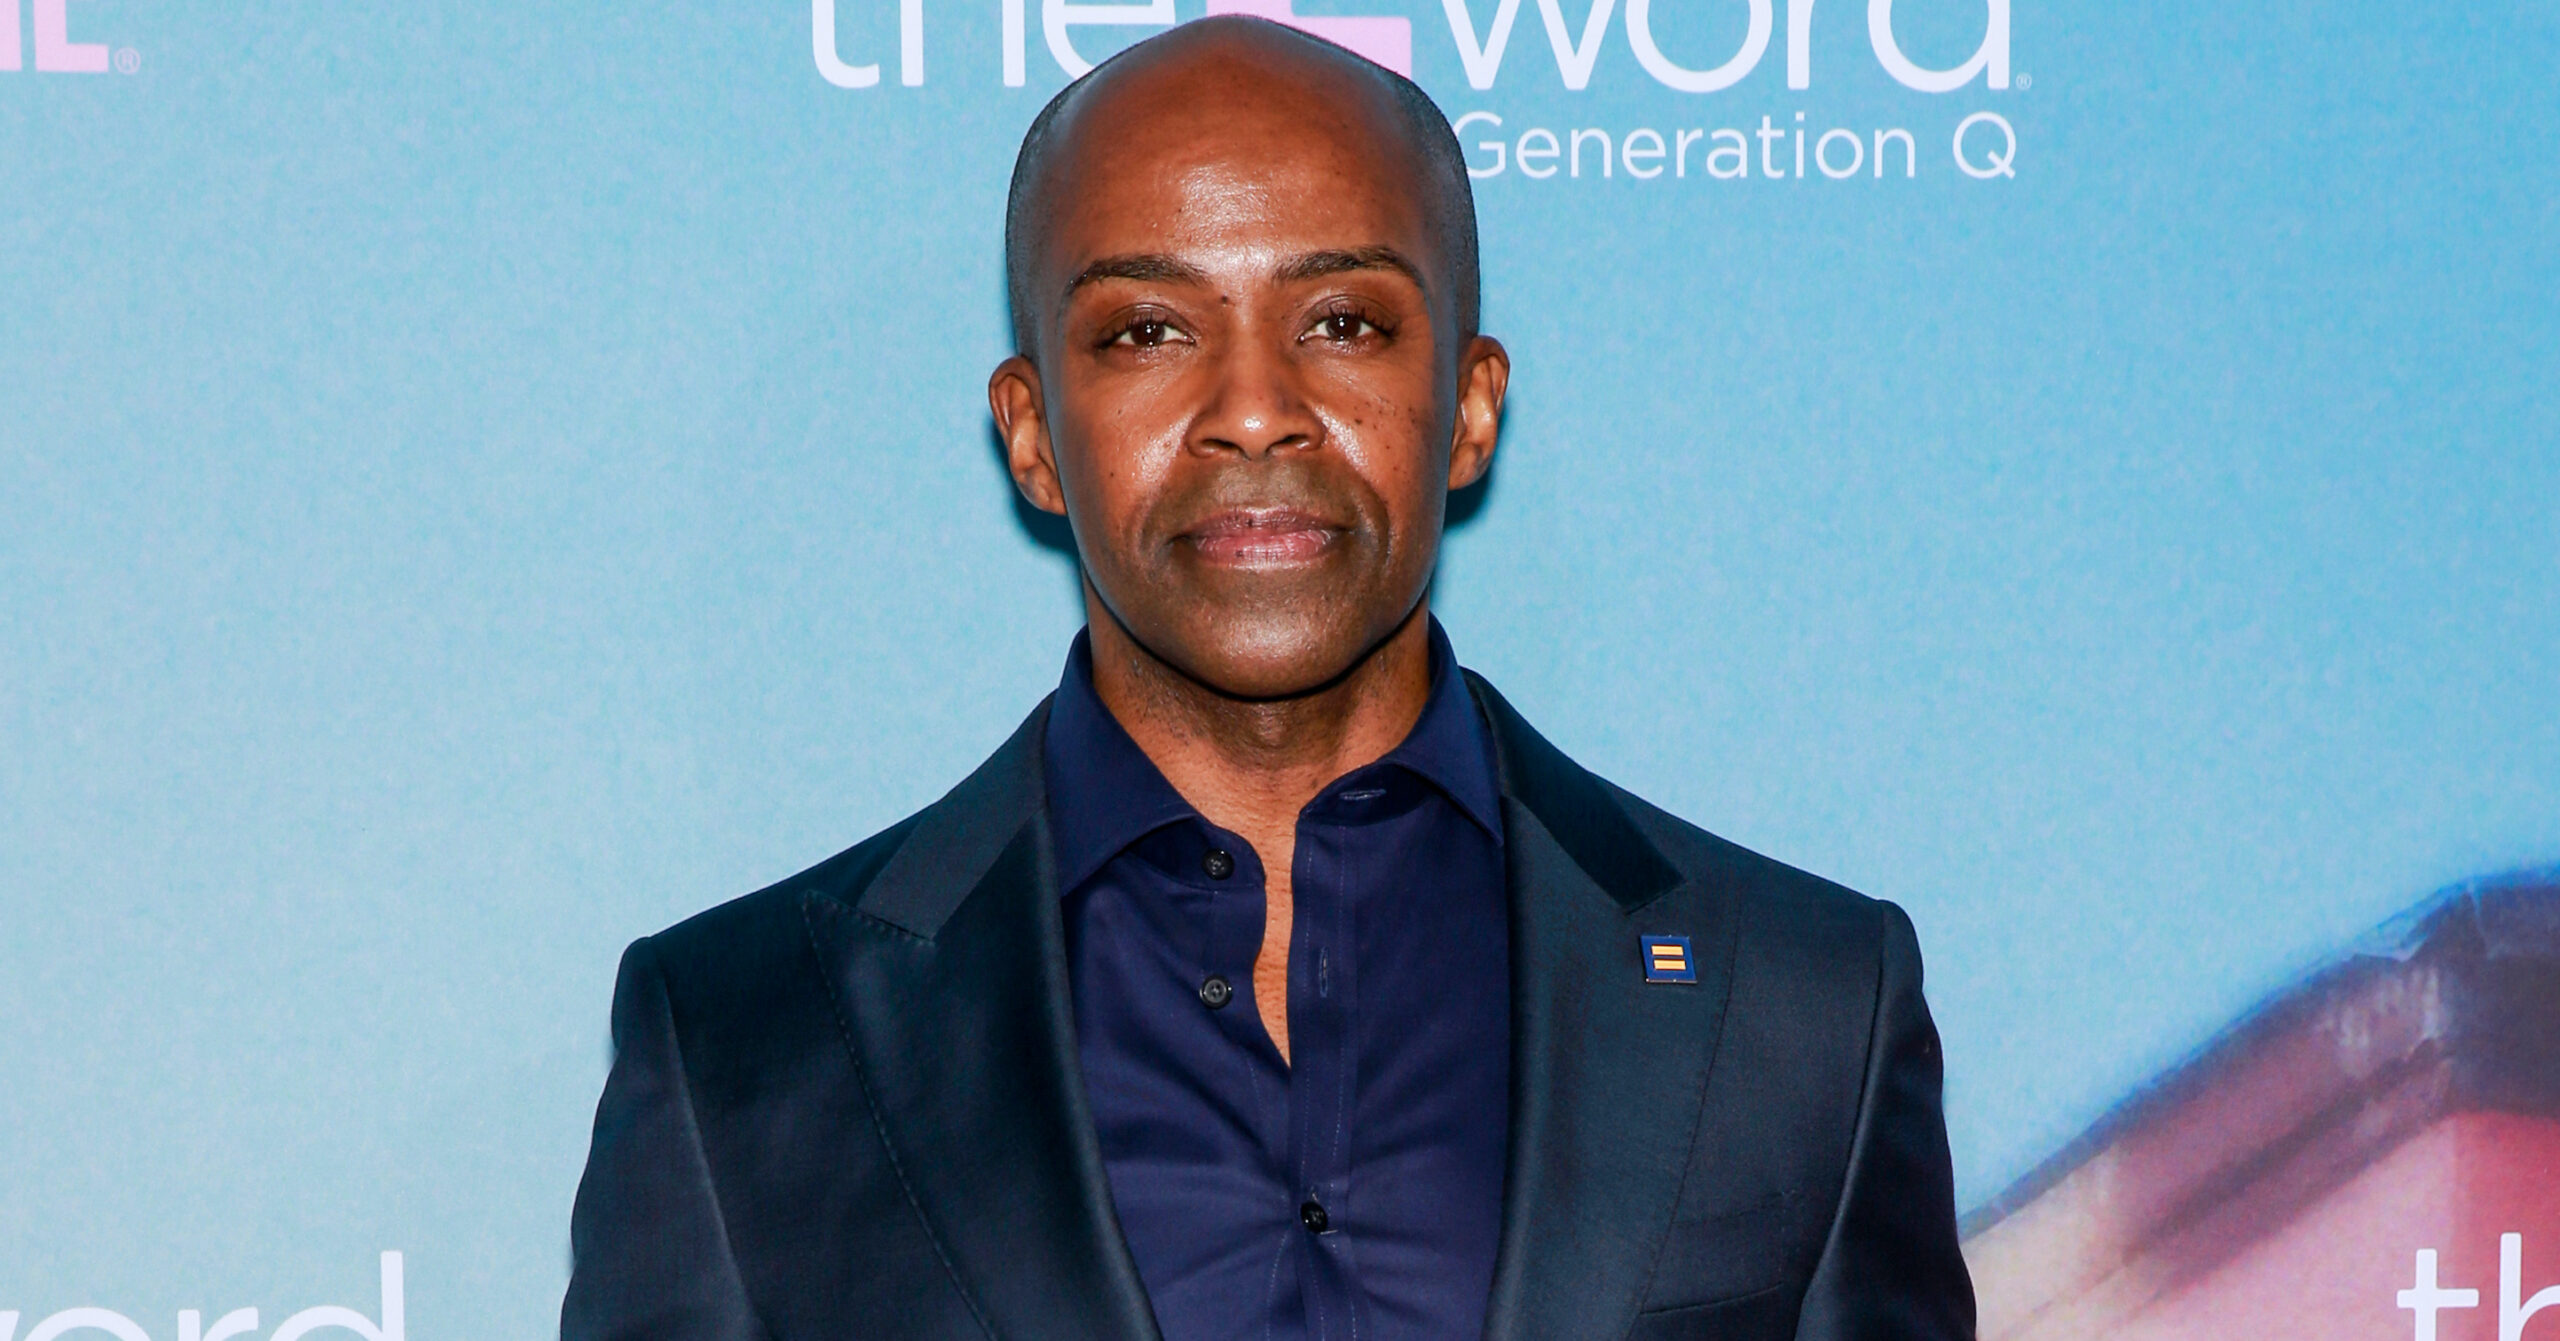 The Human Rights Campaign just fired its first Black president Alphonso David